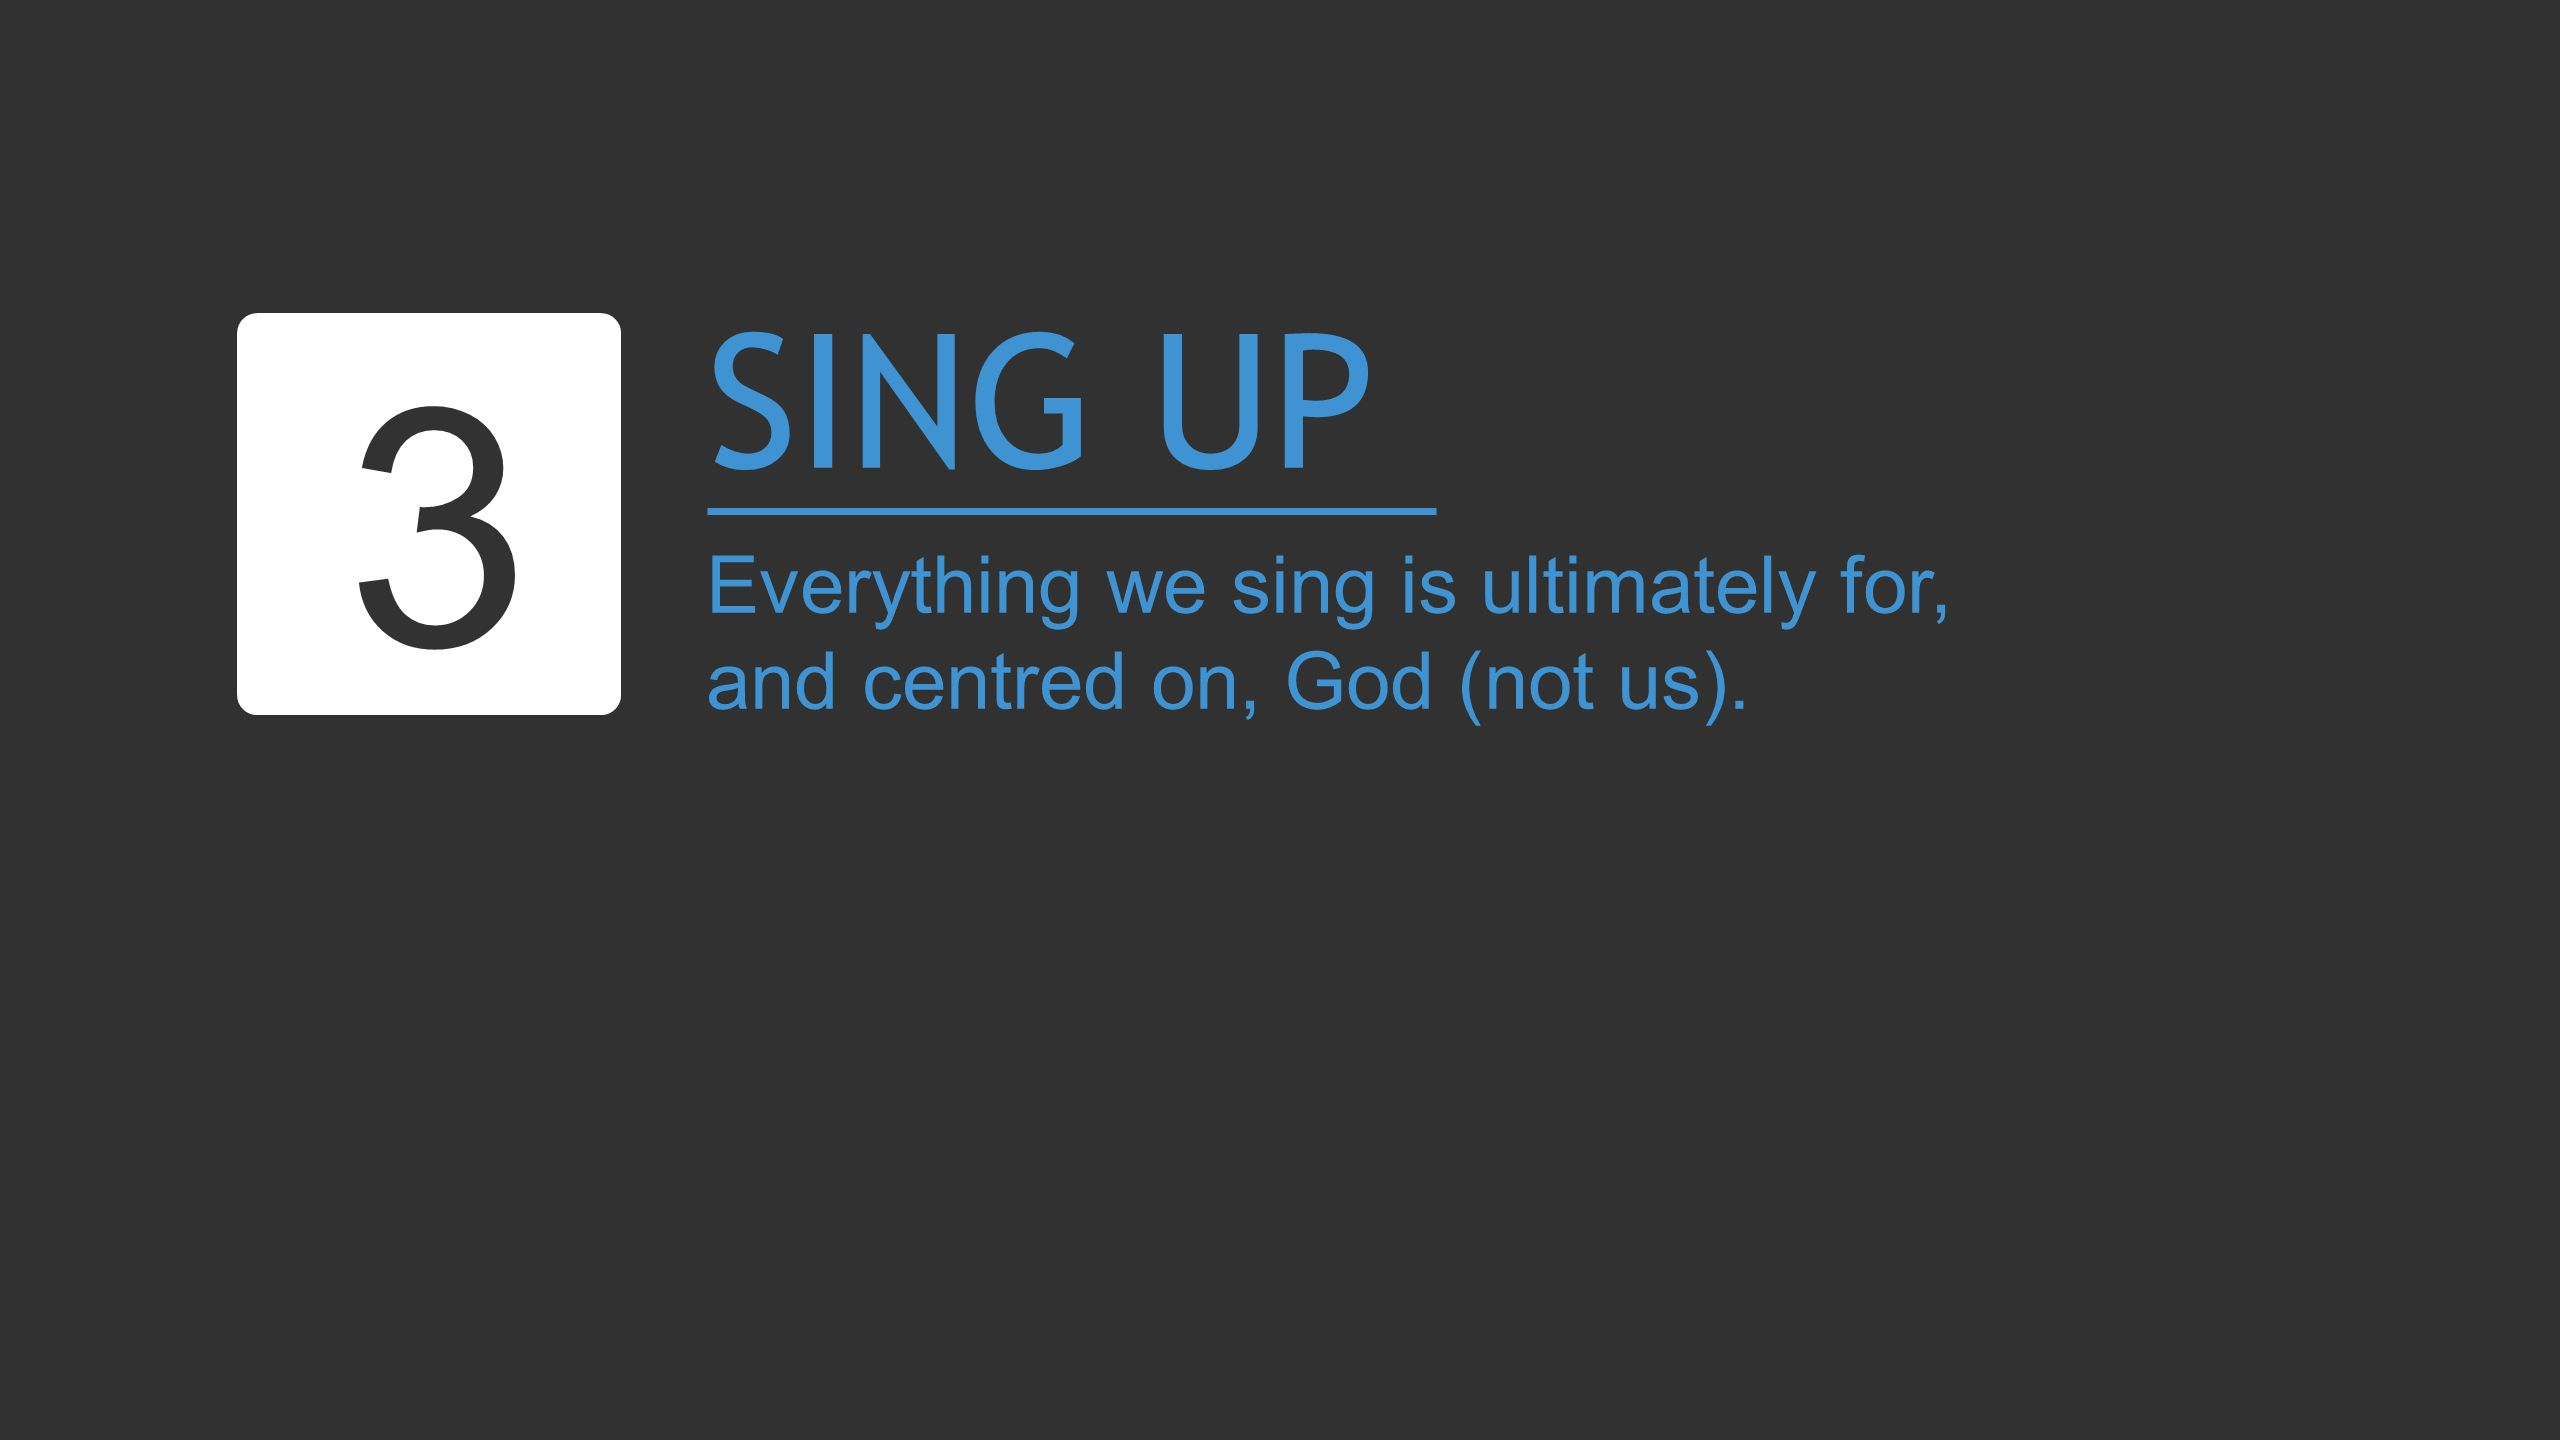 SING UP Everything we sing is ultimately for, and centred on, God (not us). 3